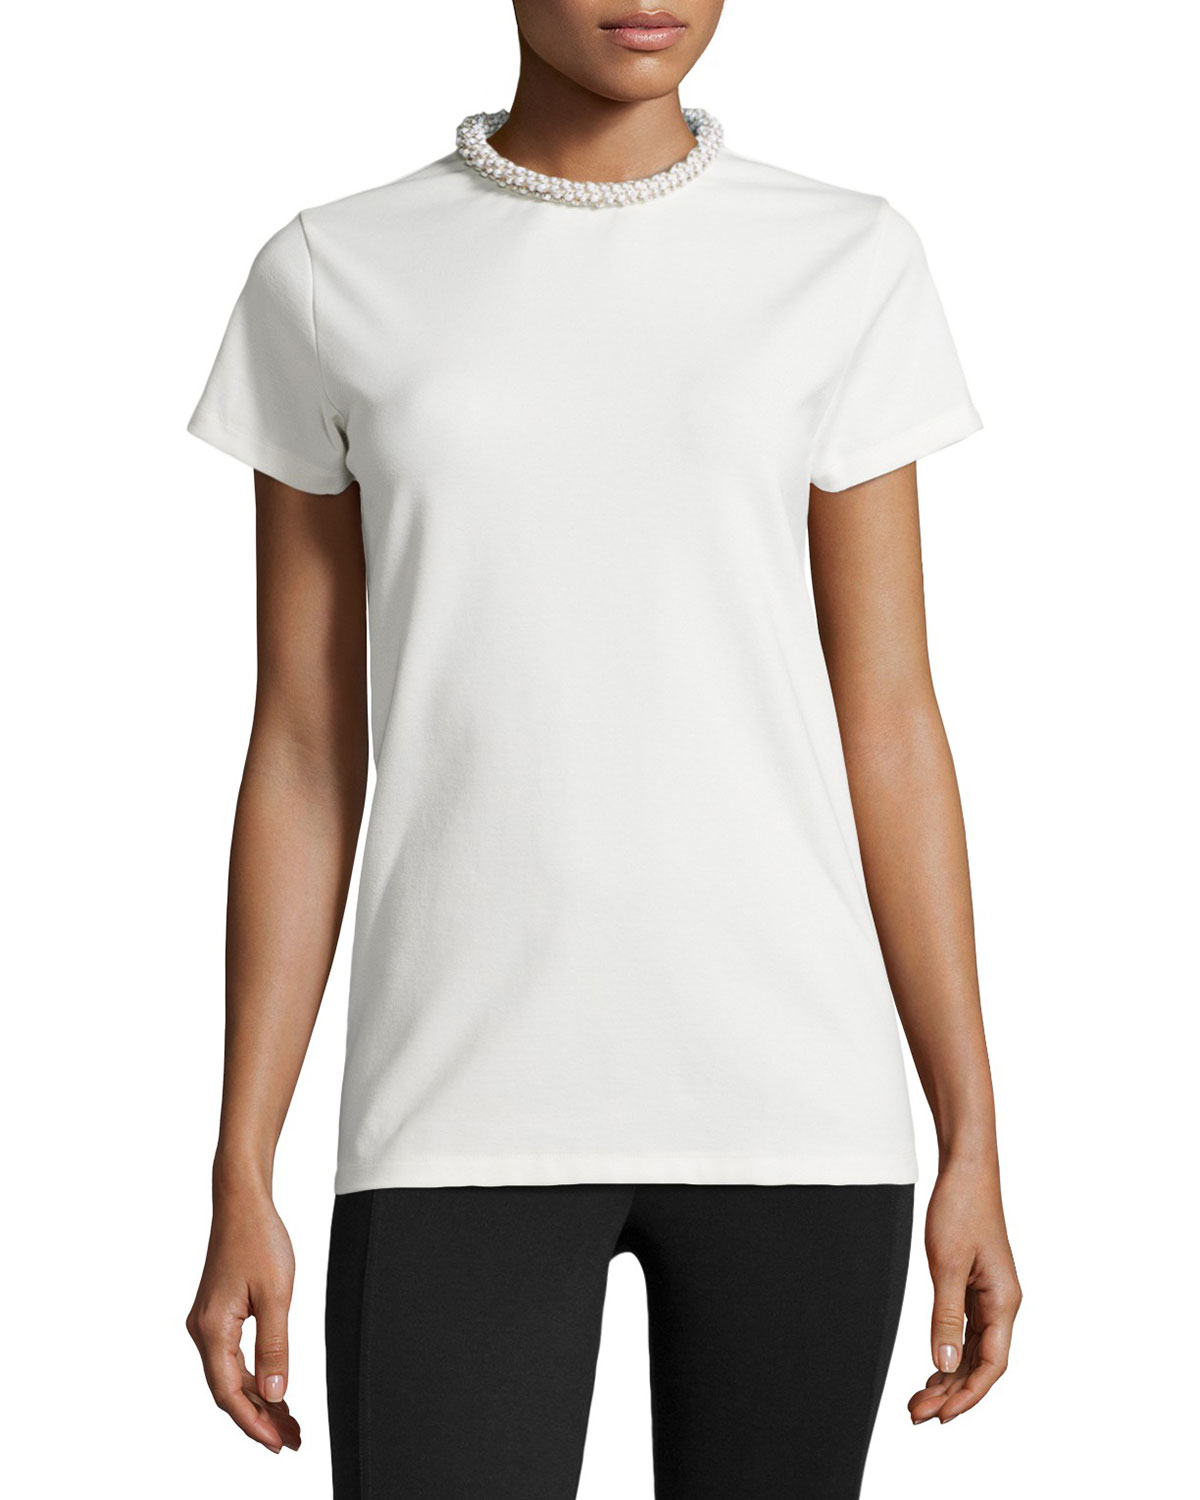 Lyst stella mccartney embellished crewneck tee in white for Stella mccartney t shirt